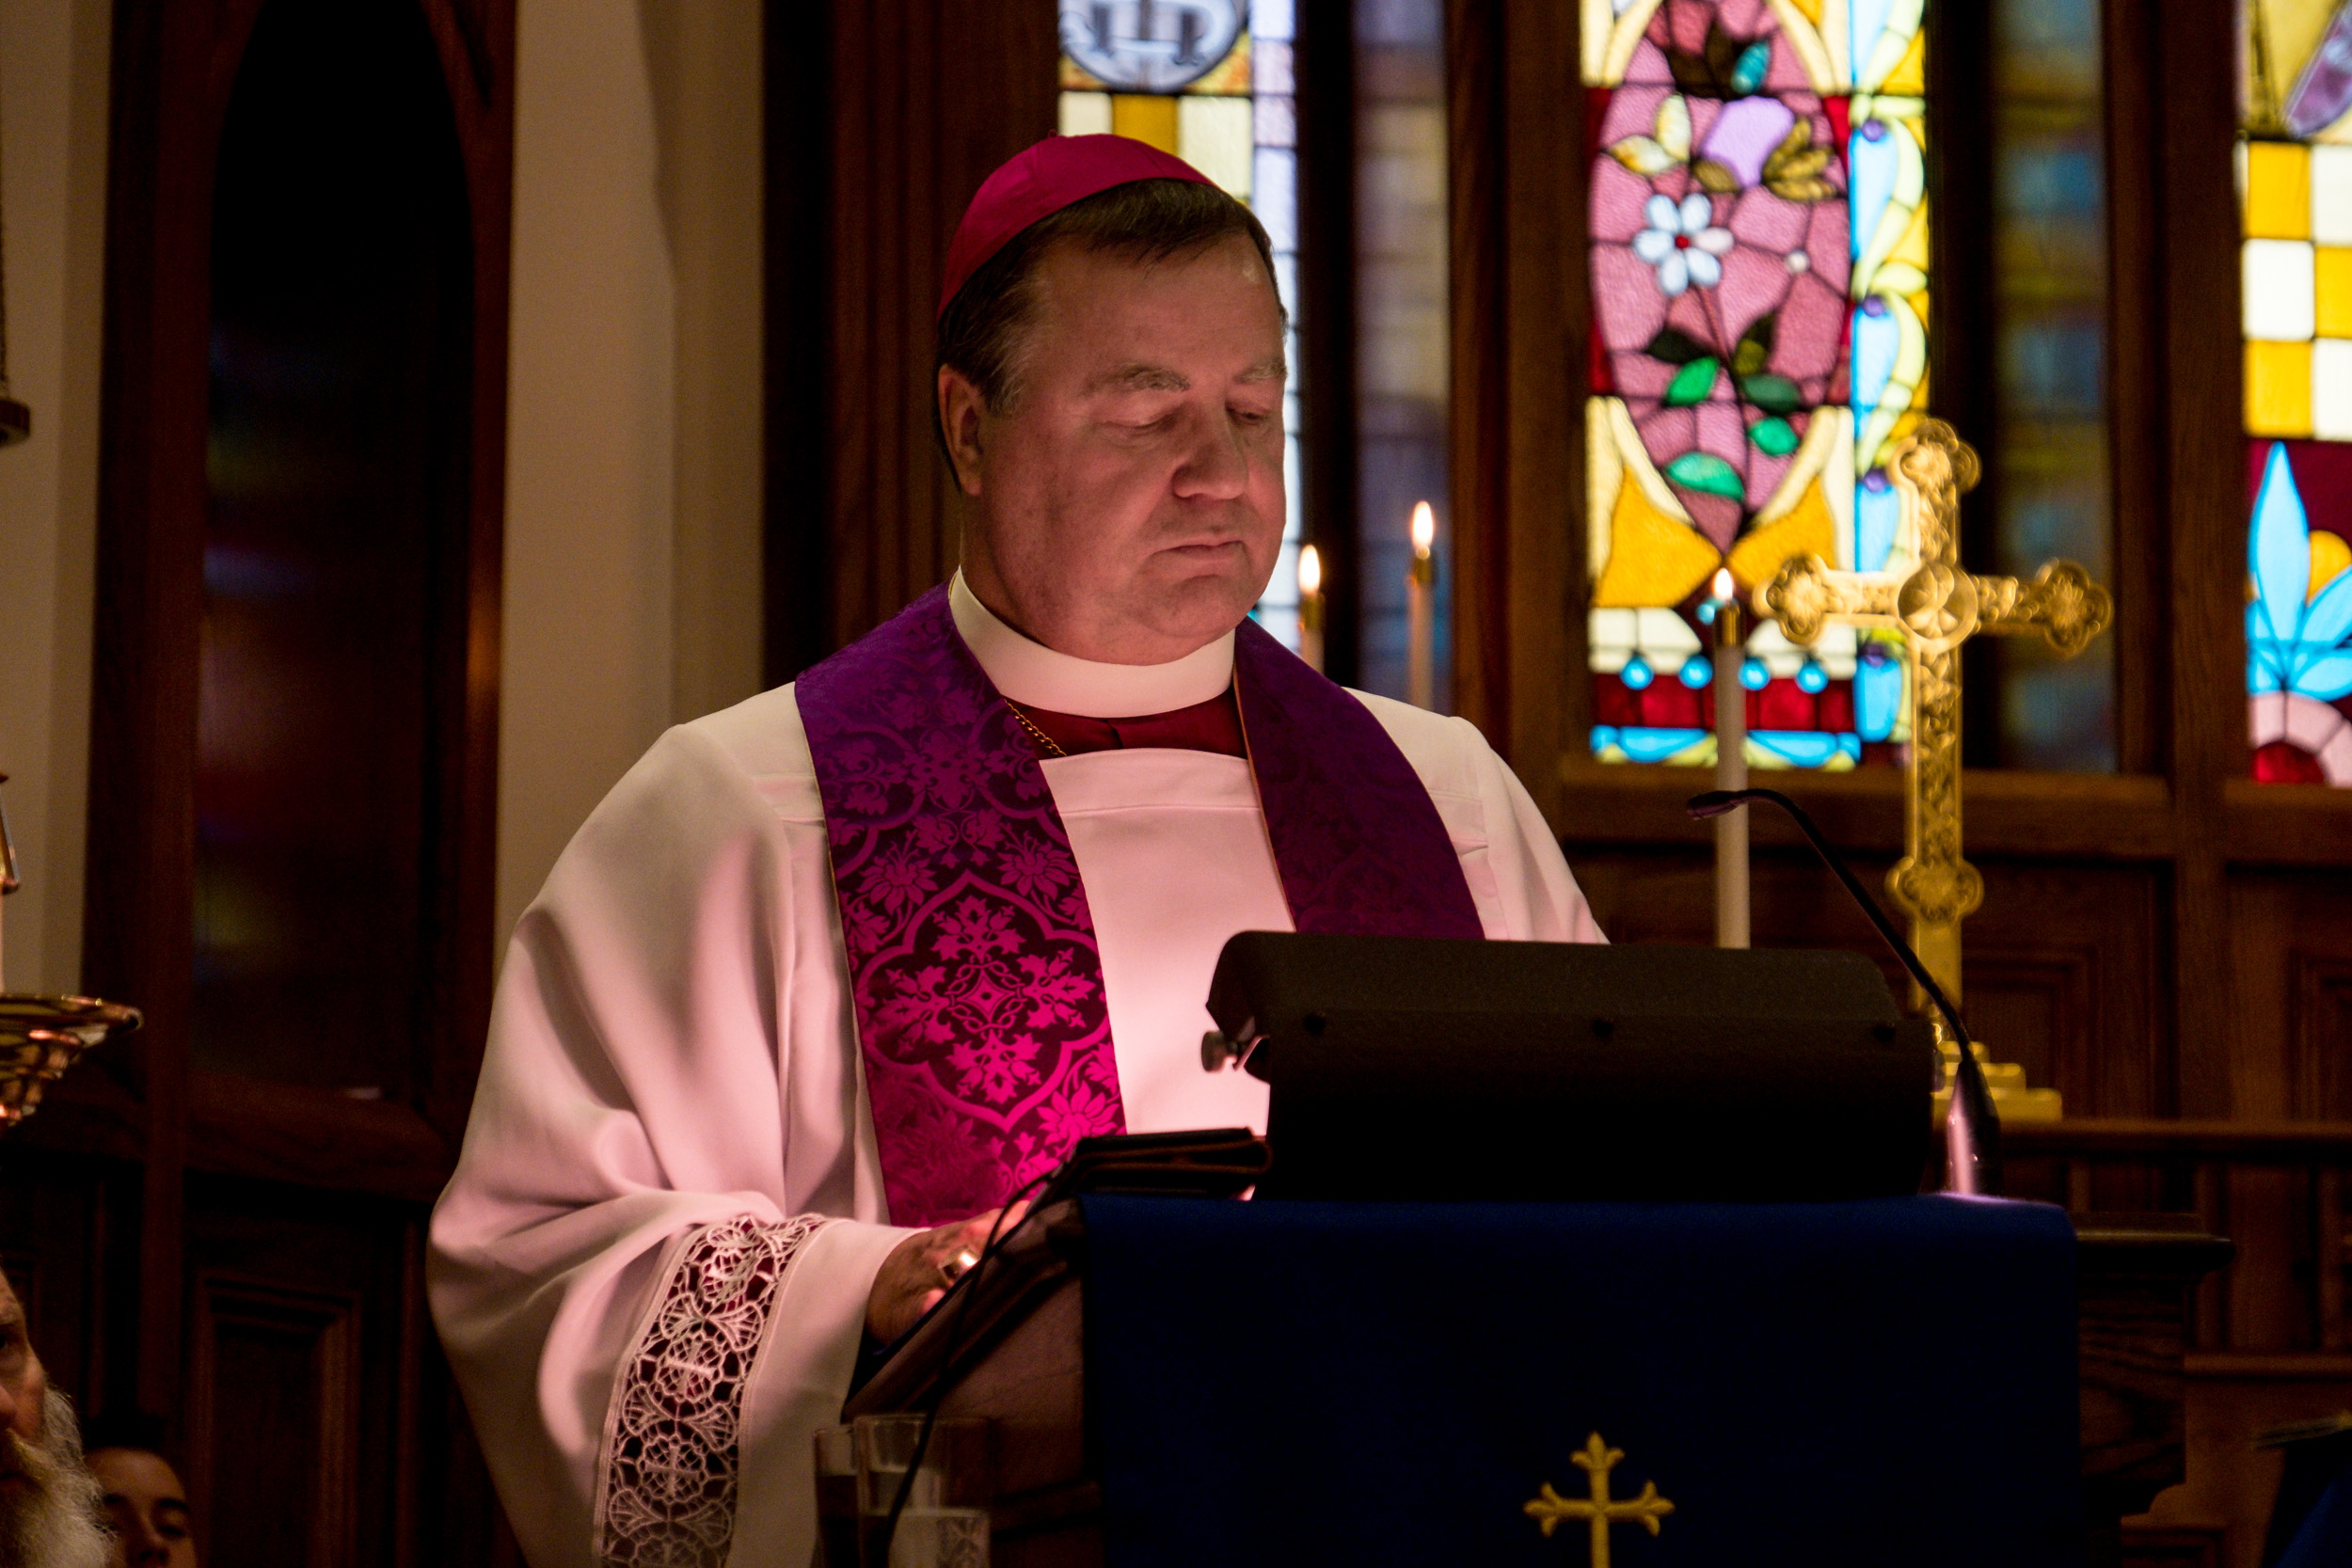 Bishop Marty's sermon for the Fourth Sunday of Easter, April 25, 2021